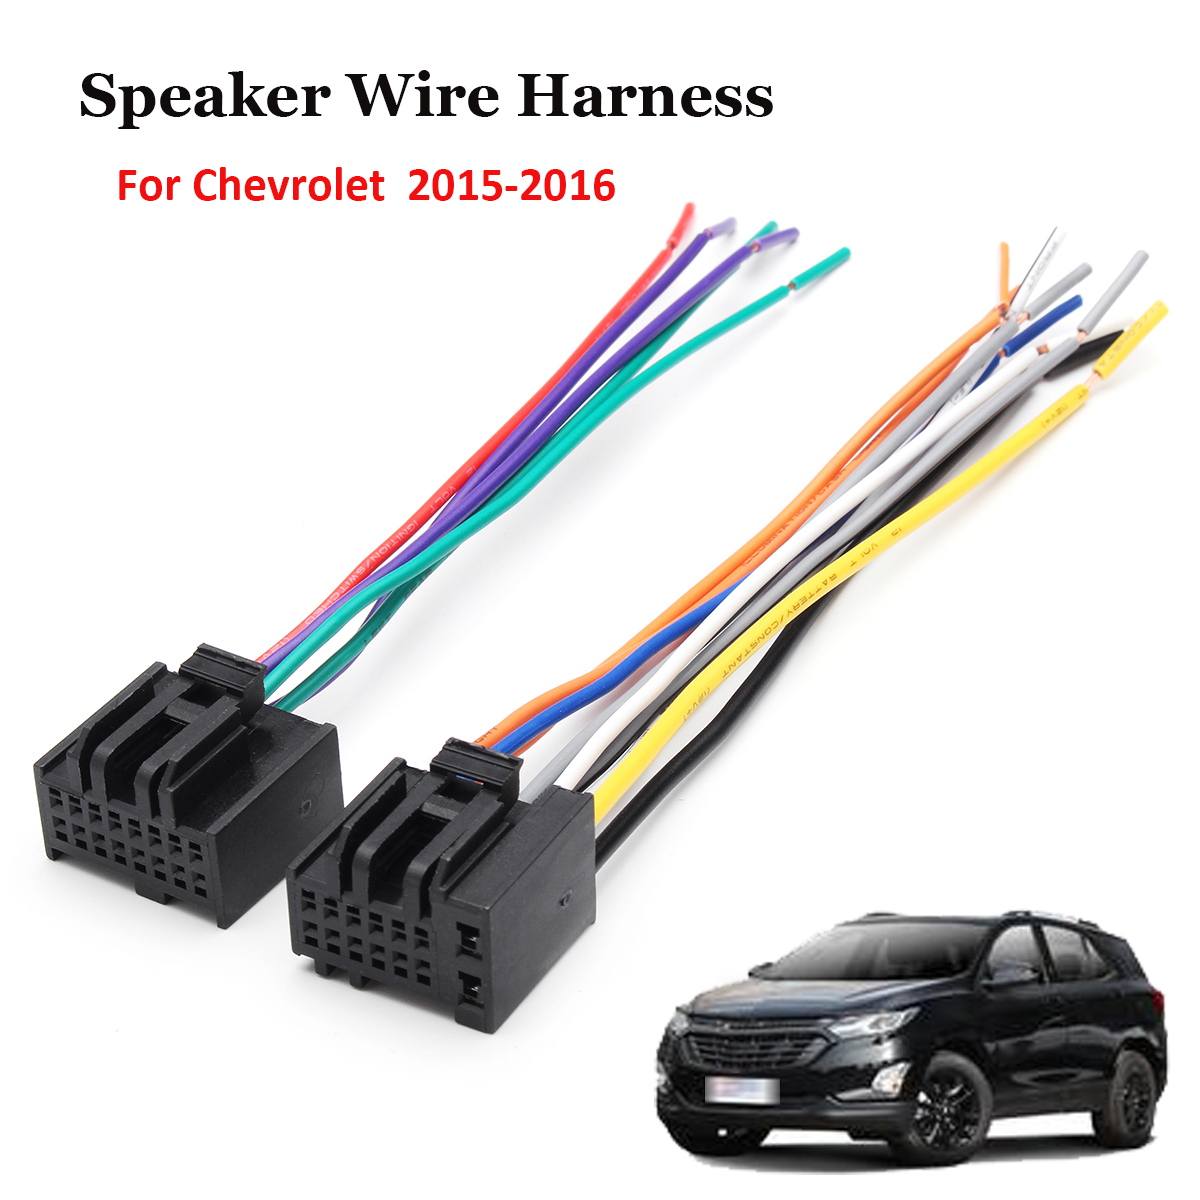 Other Parts Accessories 2pcs Car Radio Stereo Speaker Wiring Harness Damaged Specification Material Plastic Manufacturer Part Number Gm 1409m Interchange Metra 71 2105